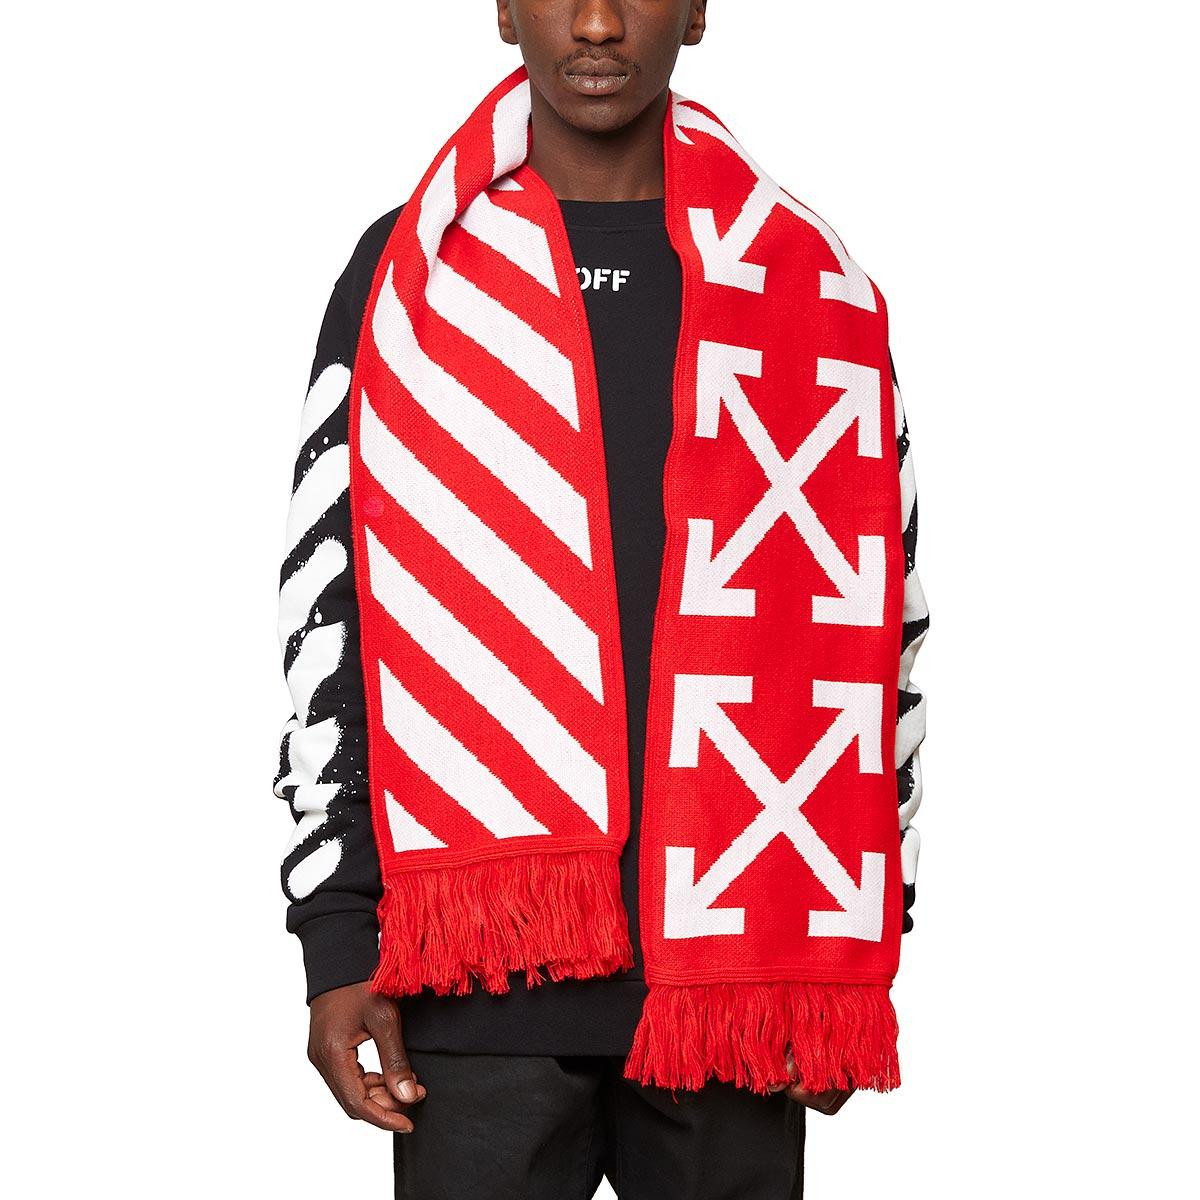 virgil guys Louis vuitton official usa website - louis vuitton is delighted to welcome virgil abloh as its new men's artistic director his first show for louis vuitton will take place in june during.